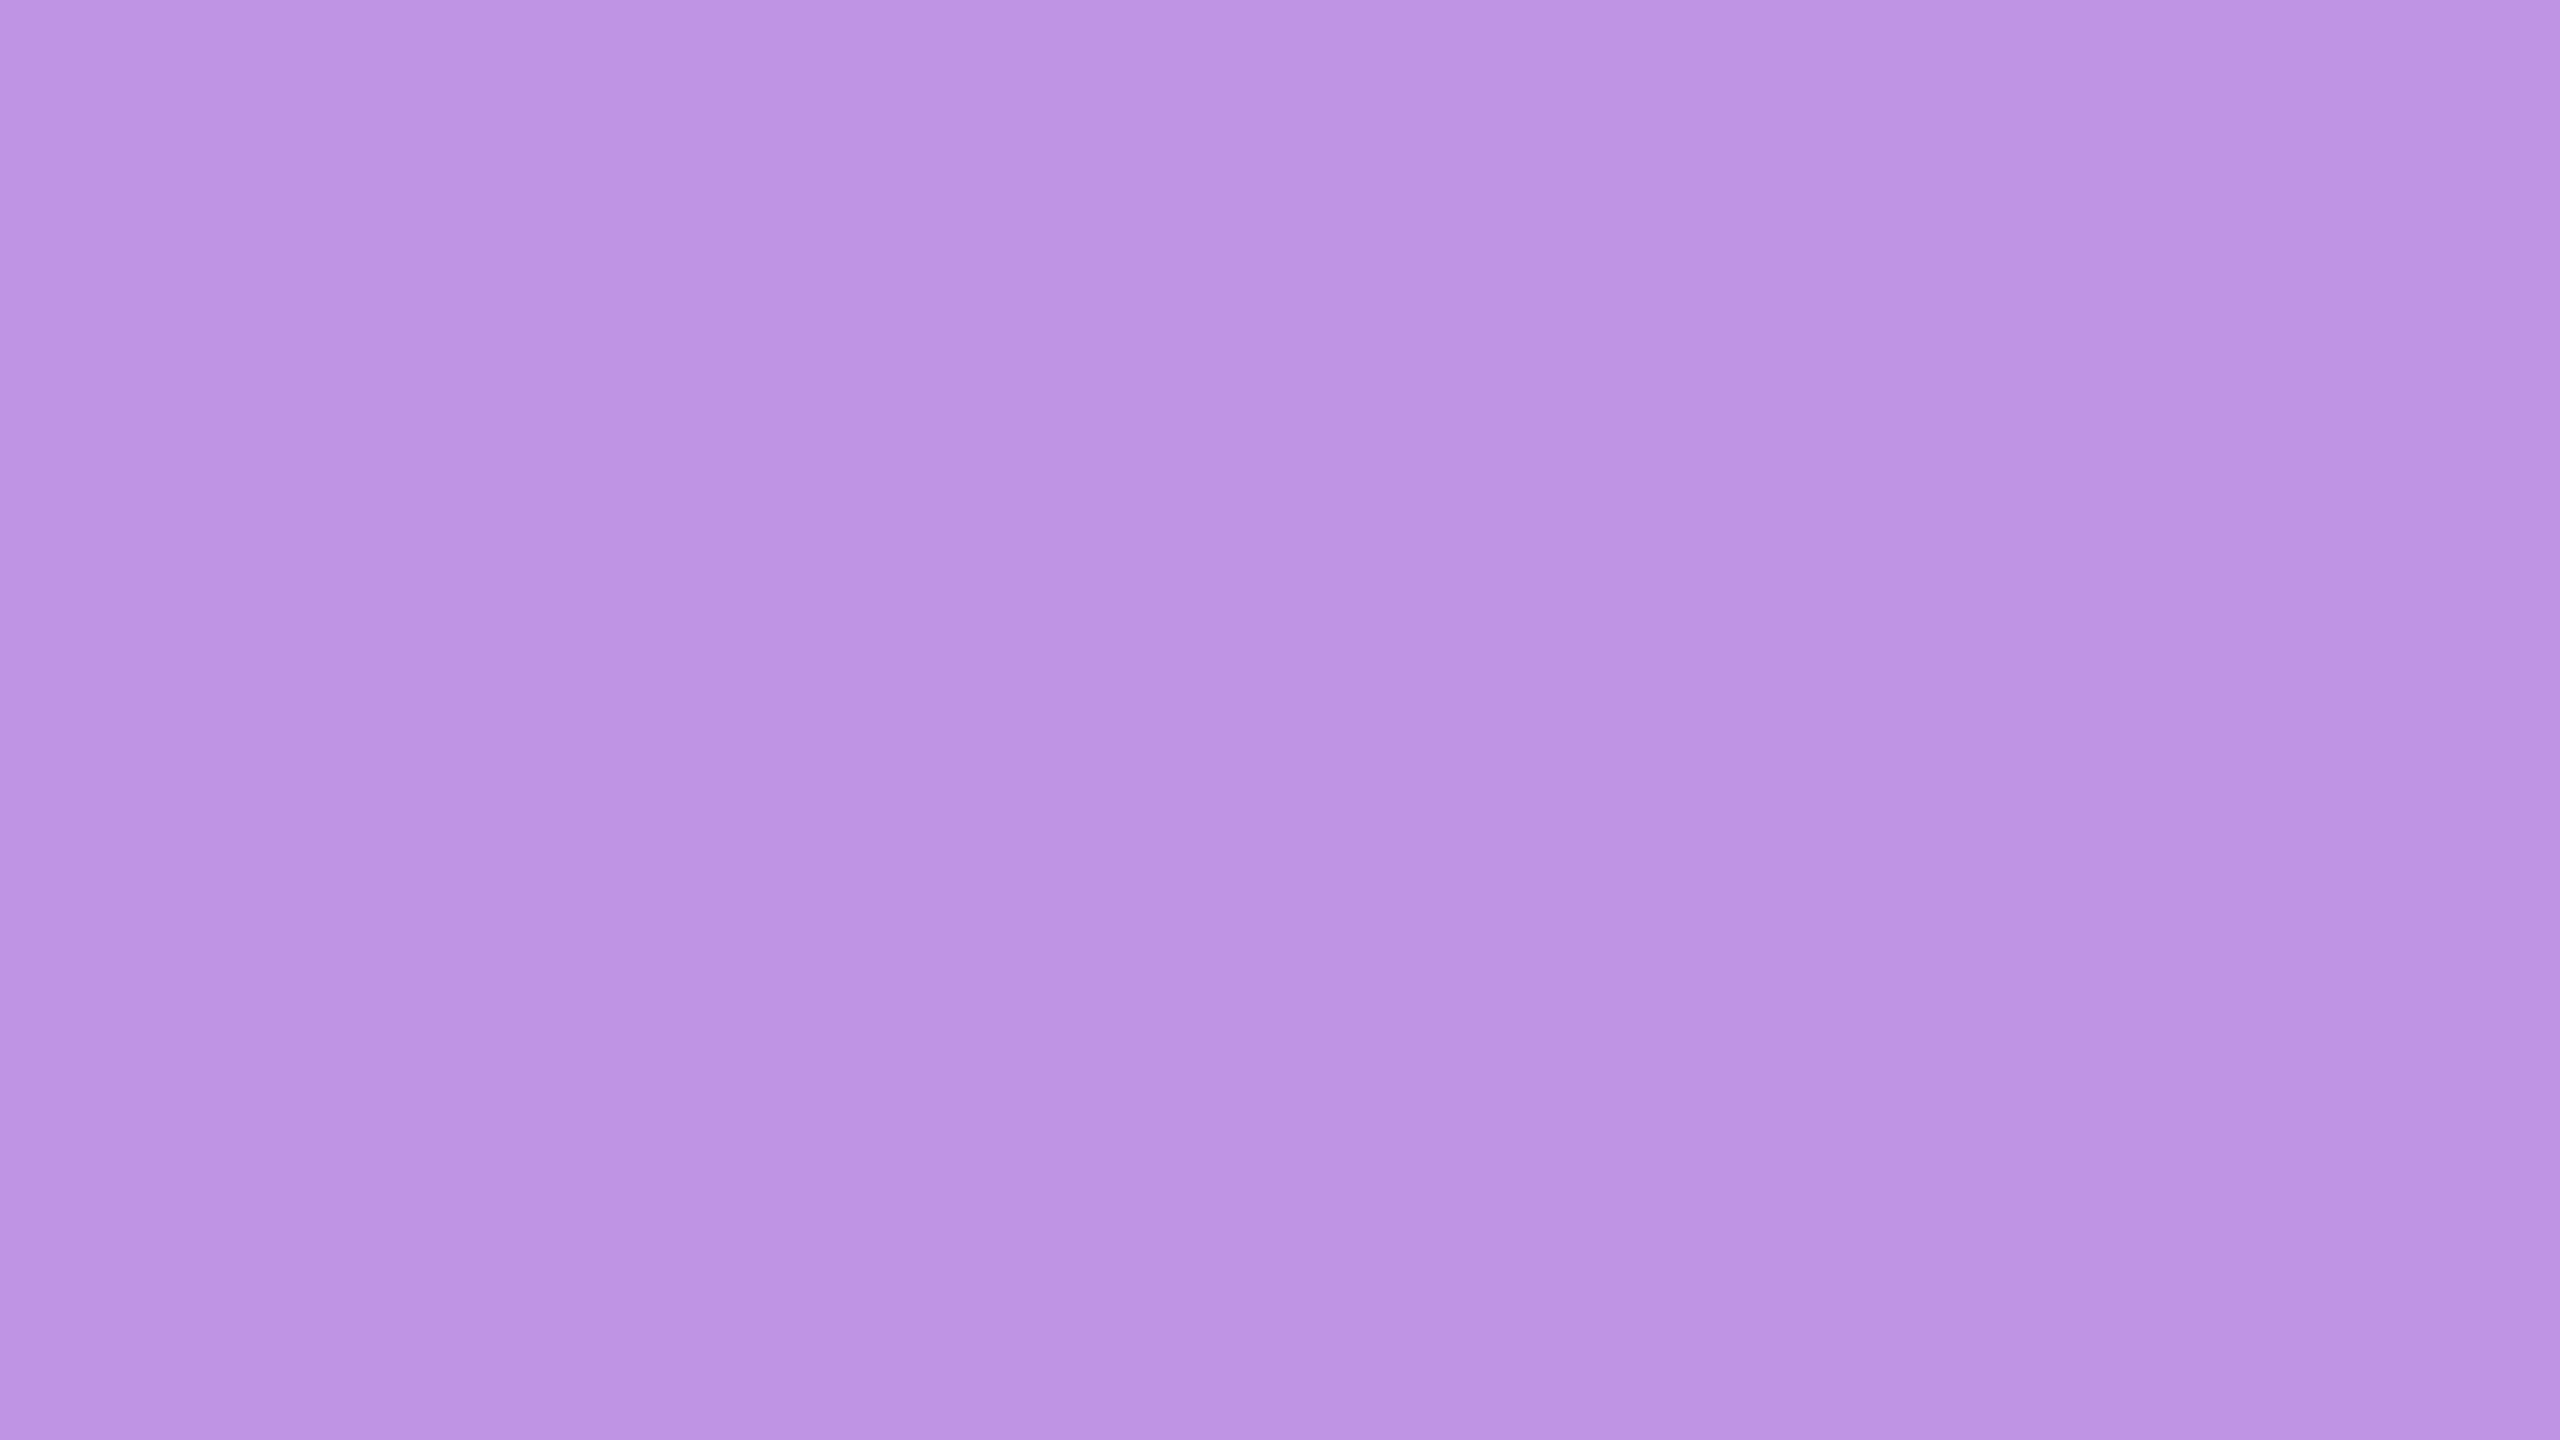 2560x1440 Bright Lavender Solid Color Background